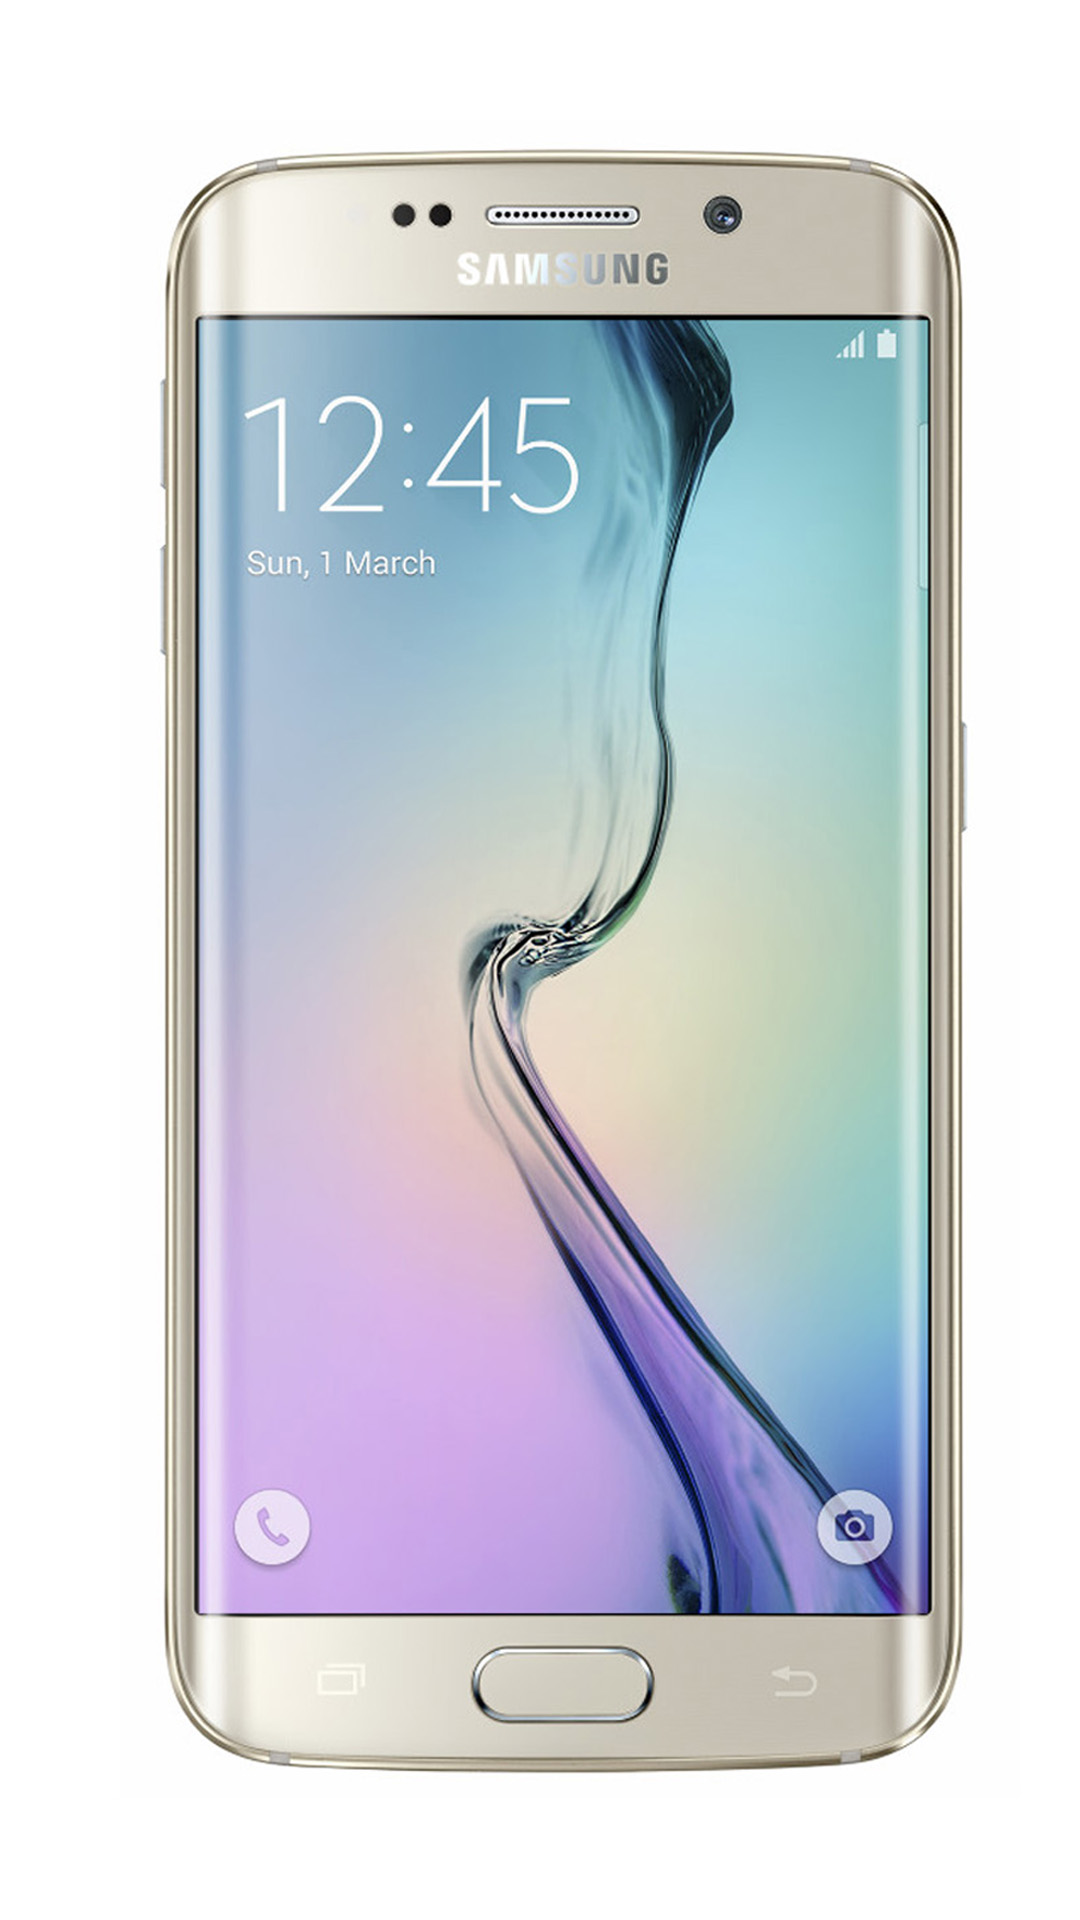 Samsung Galaxy S6 Edge 64 GB (Gold Platinum)